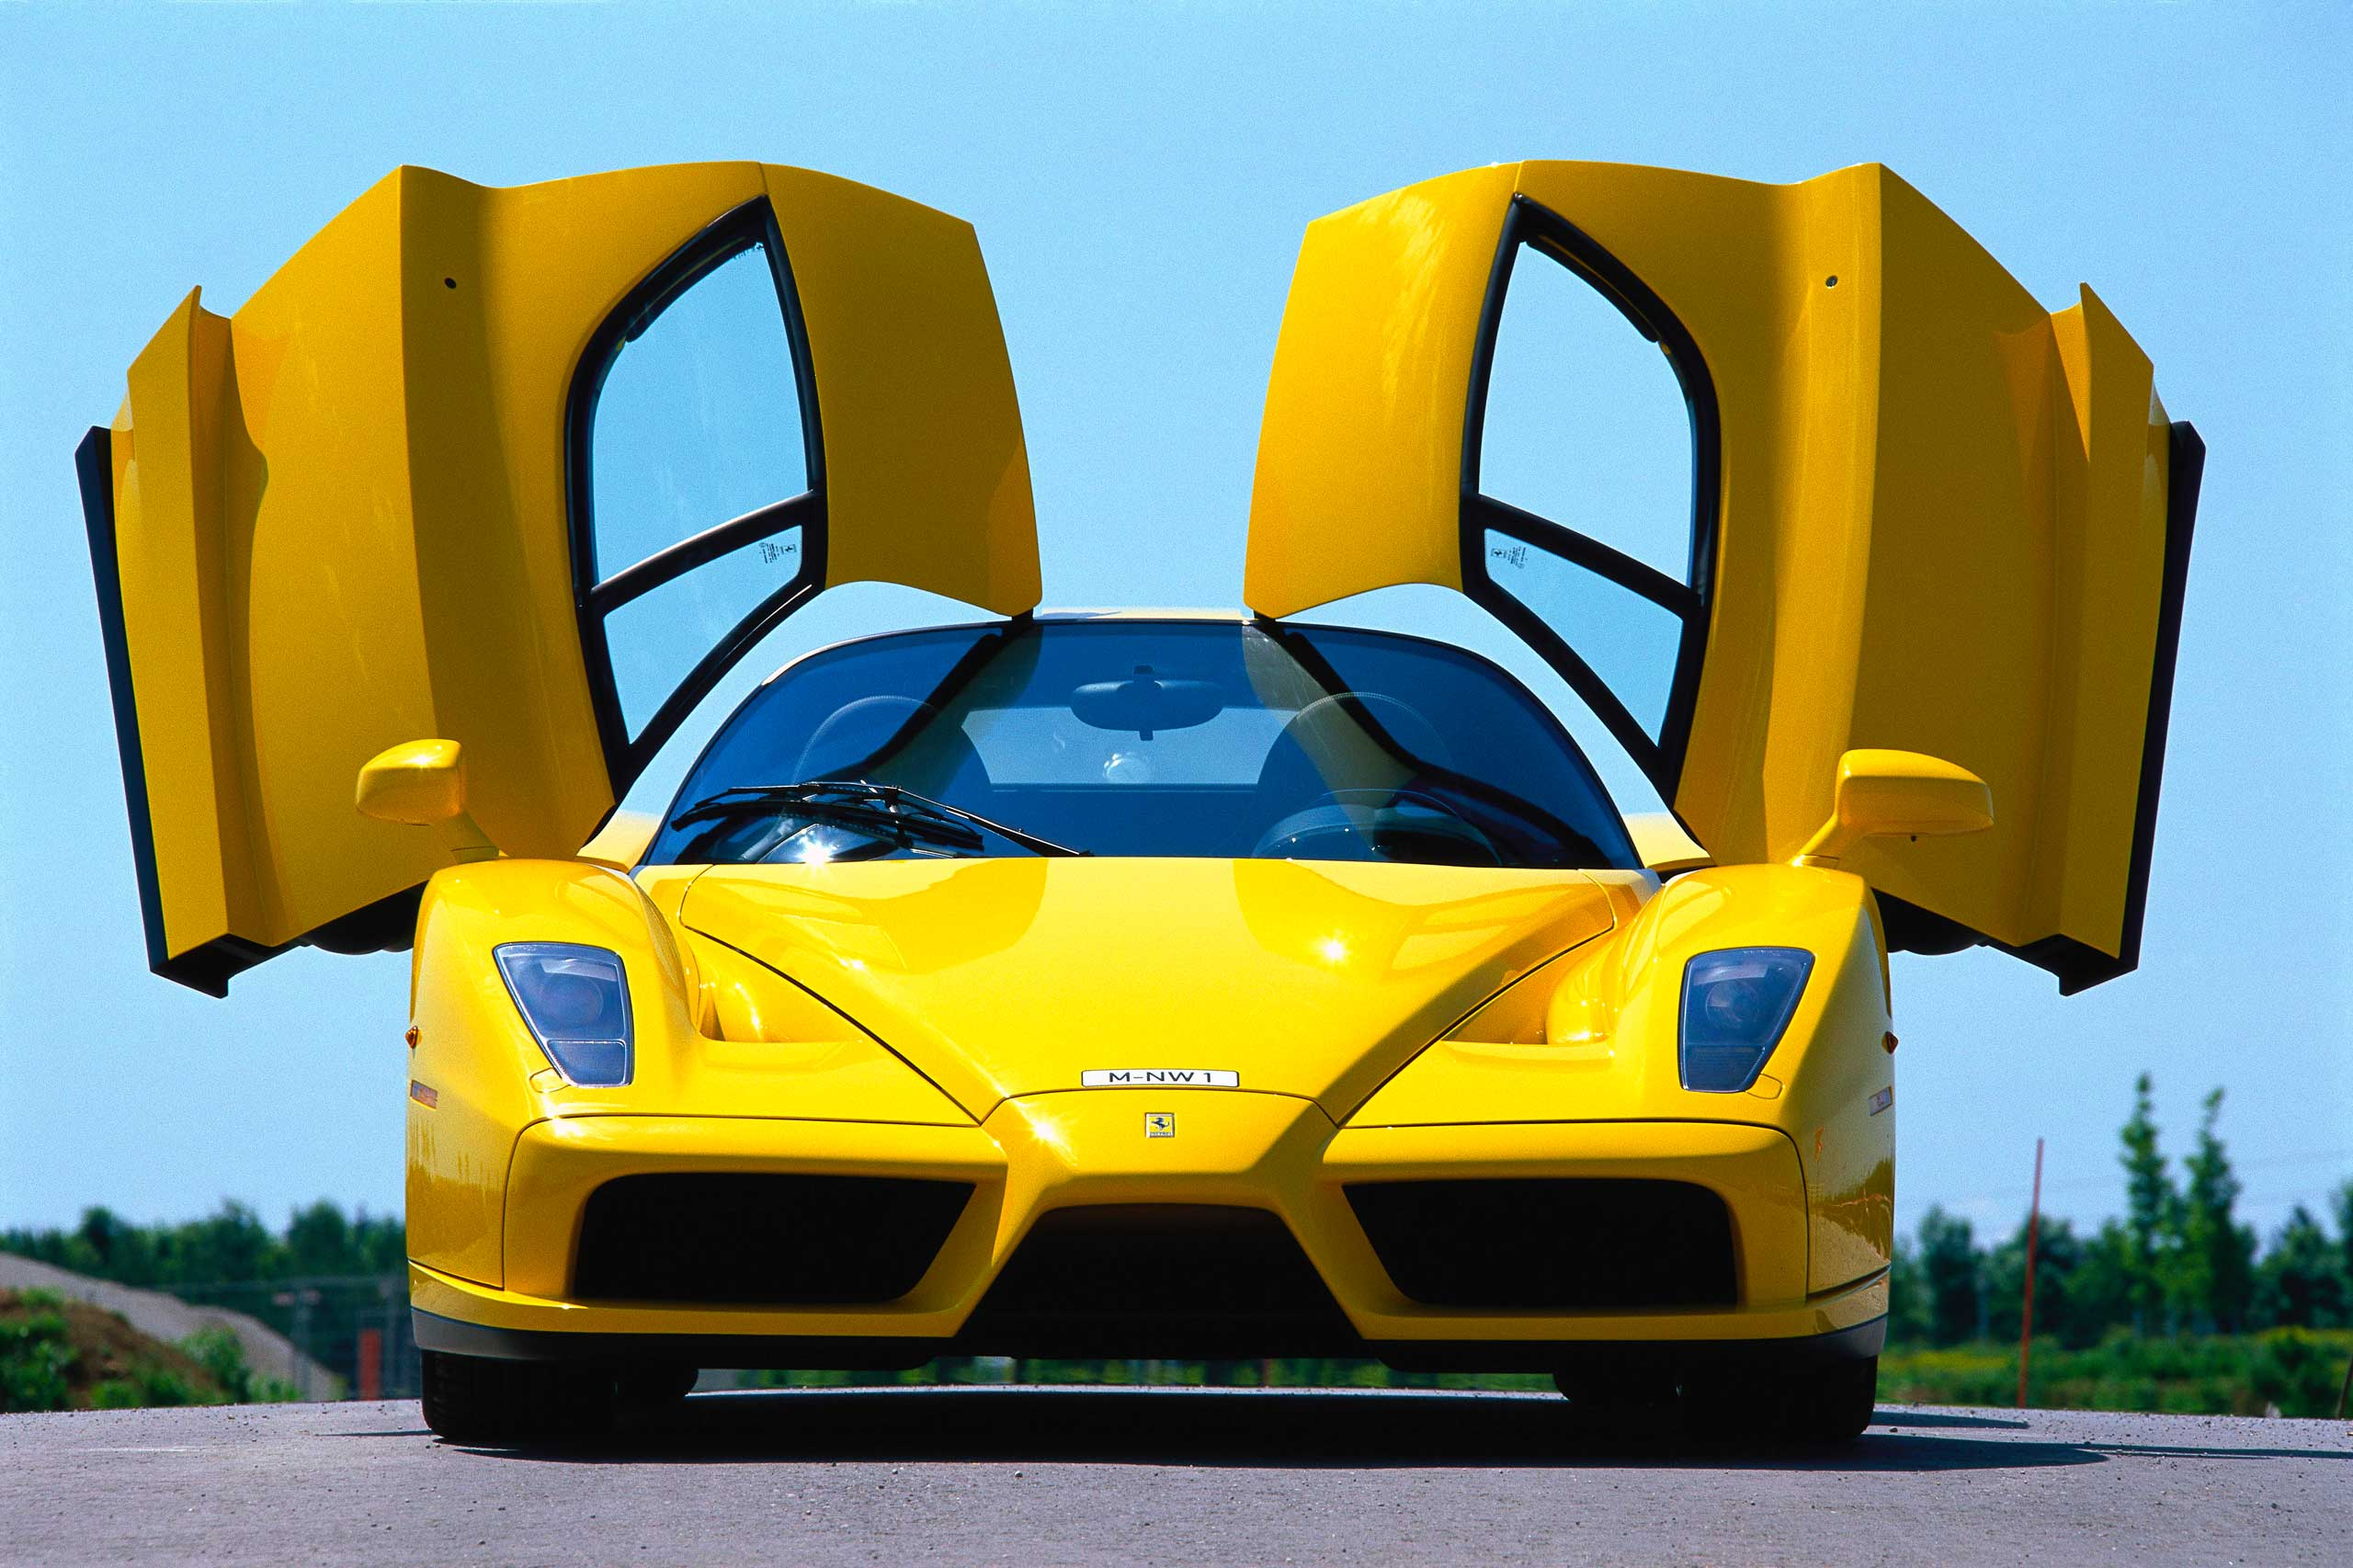 2002: The Enzo, named for Ferrari's founder, was built using formula-one technology.